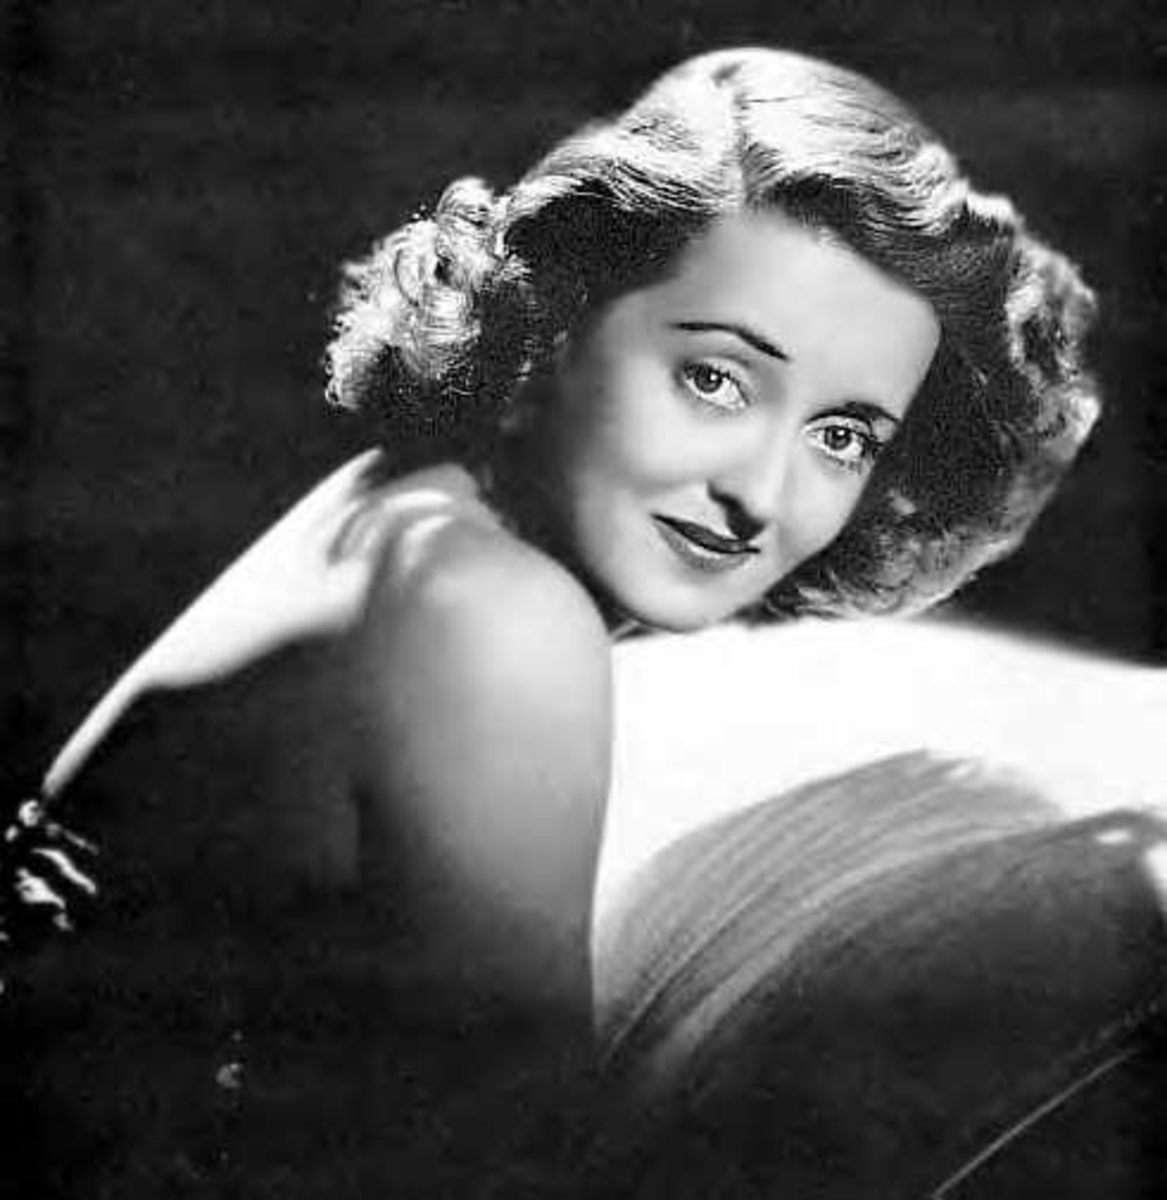 Bette Davis, an American icon, in the 1930s